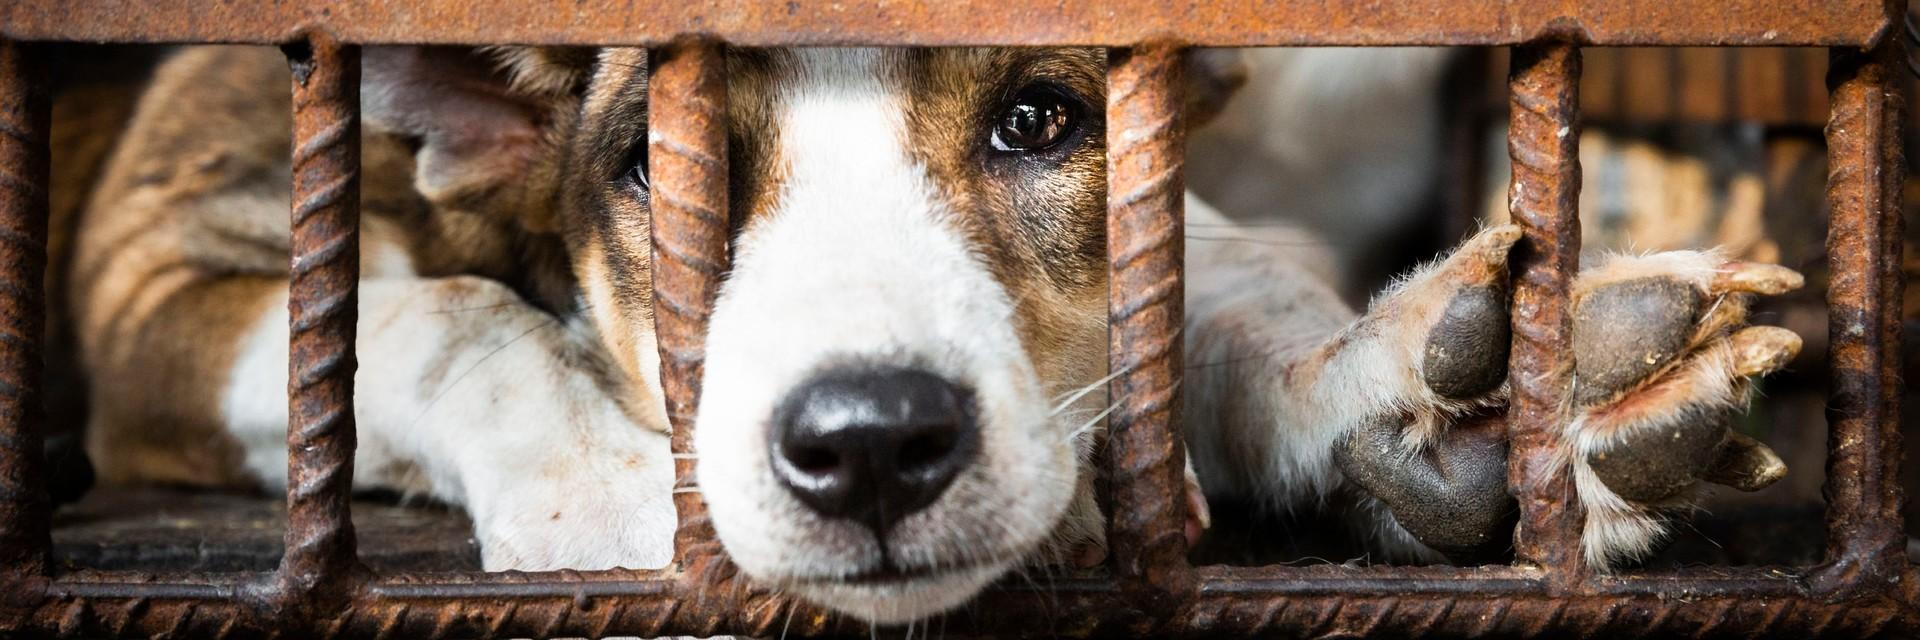 End the Dog Meat Trade in Cambodia